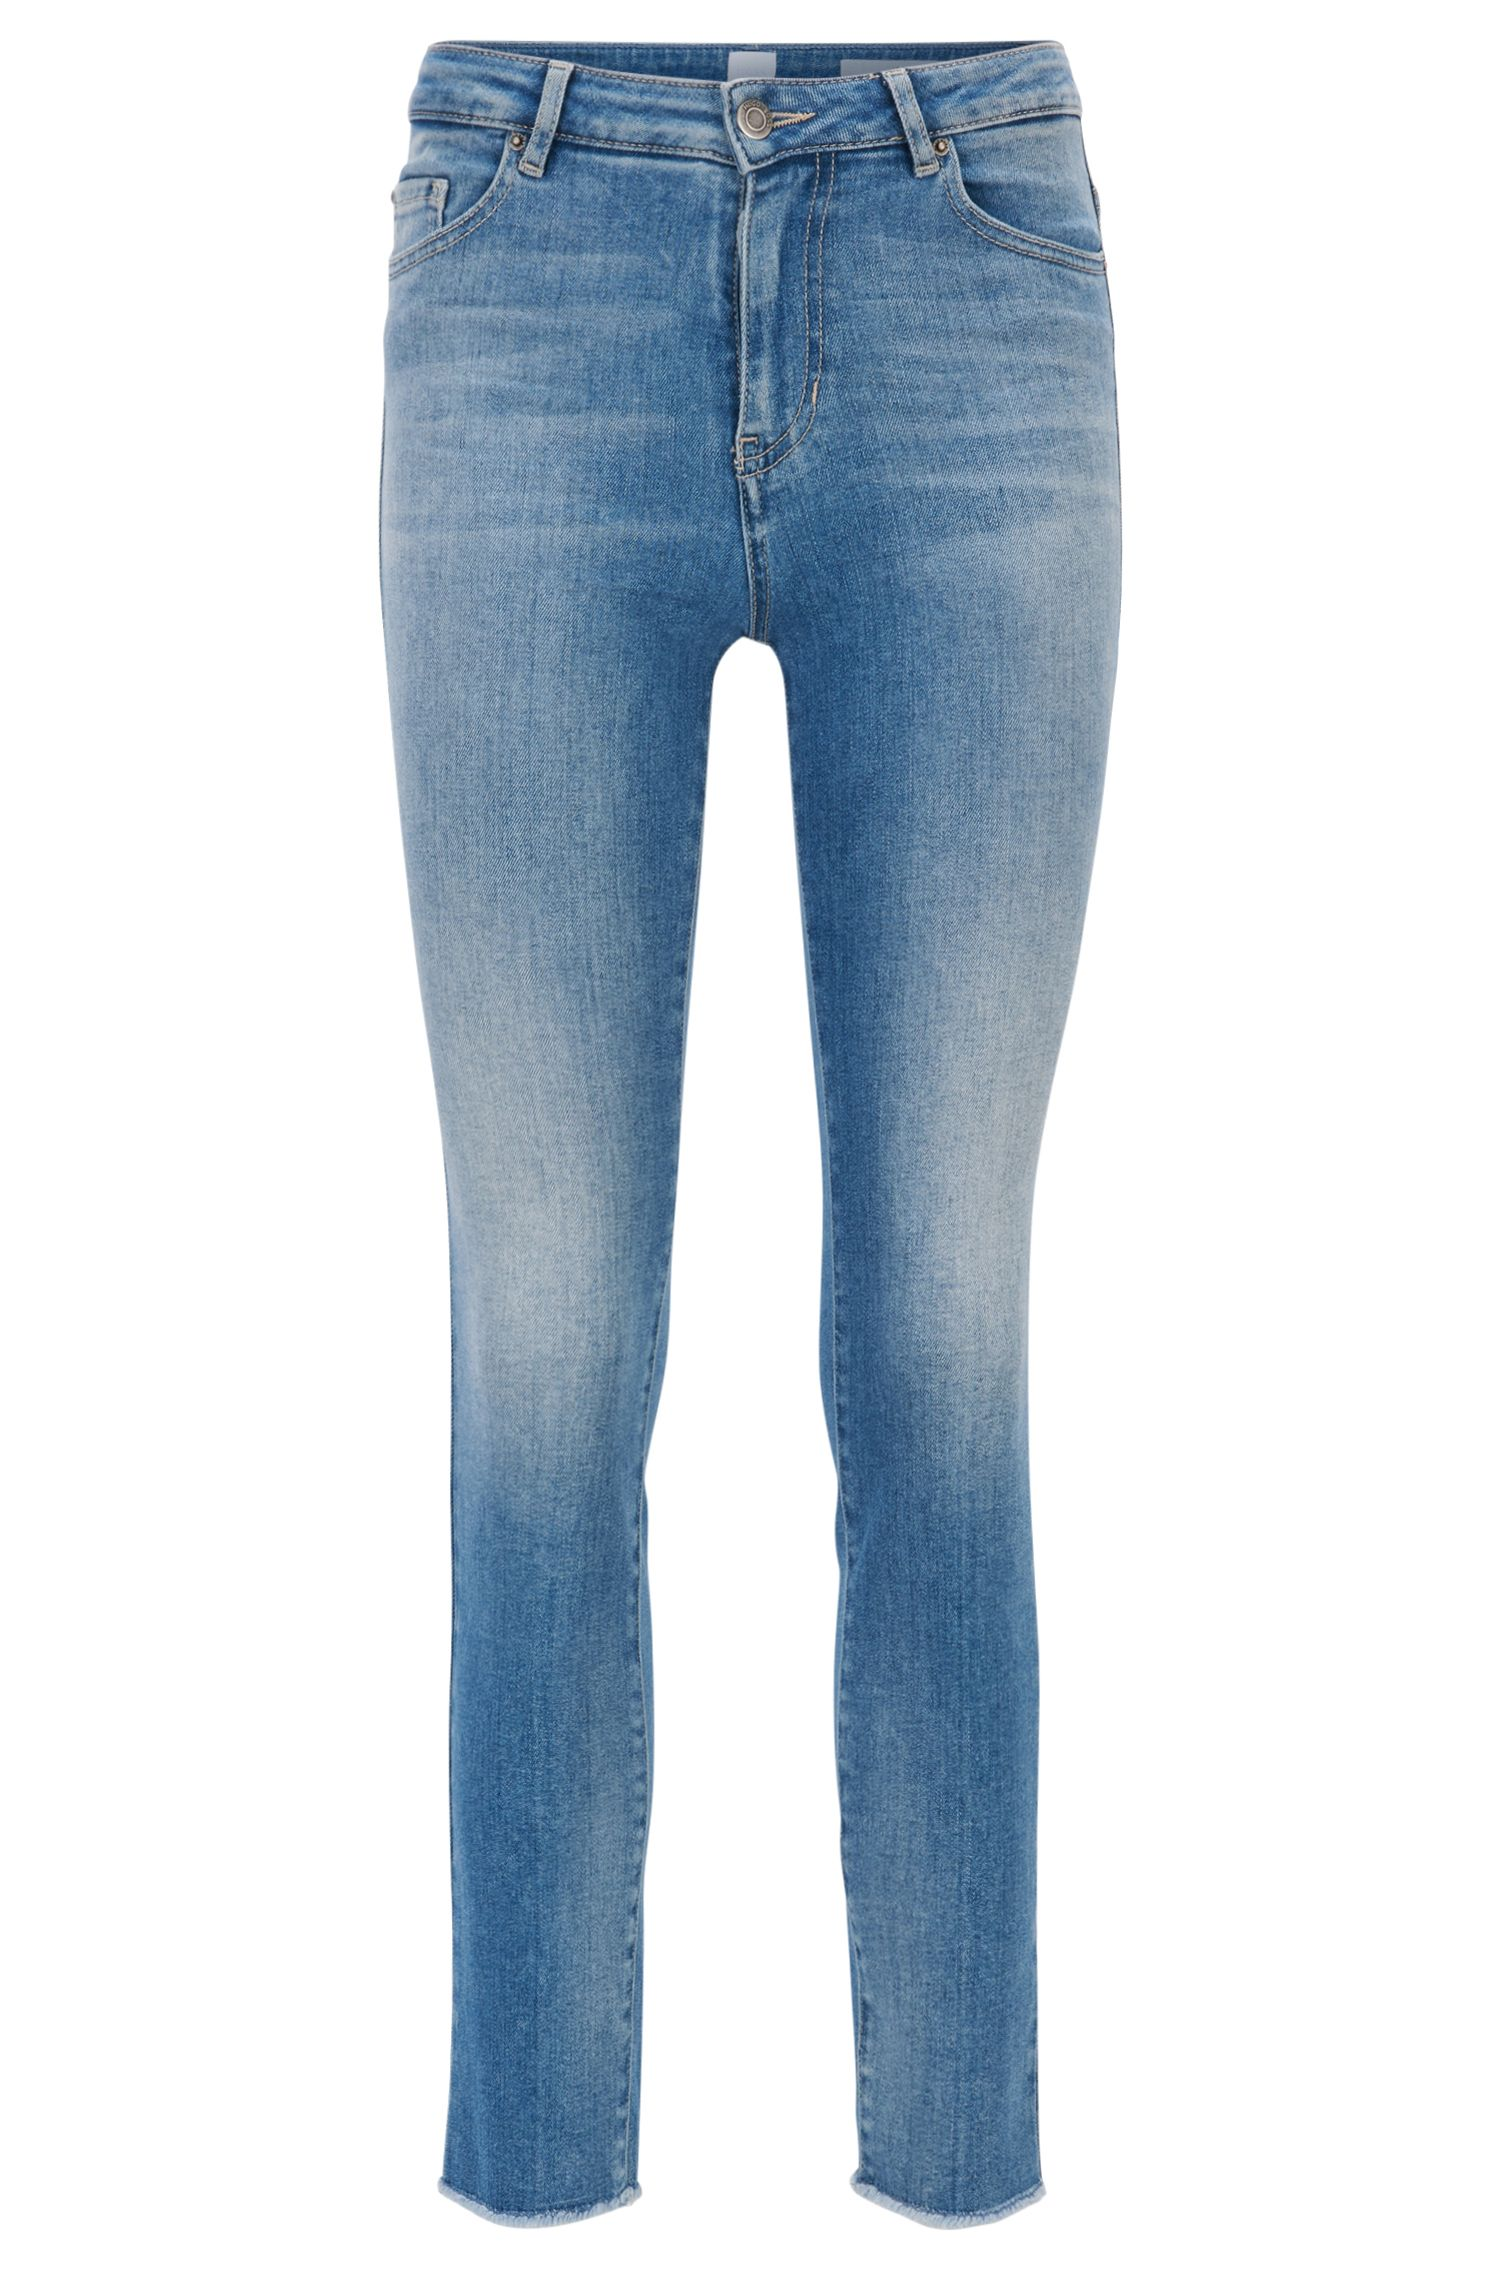 Skinny-fit cropped jeans in Italian stretch denim